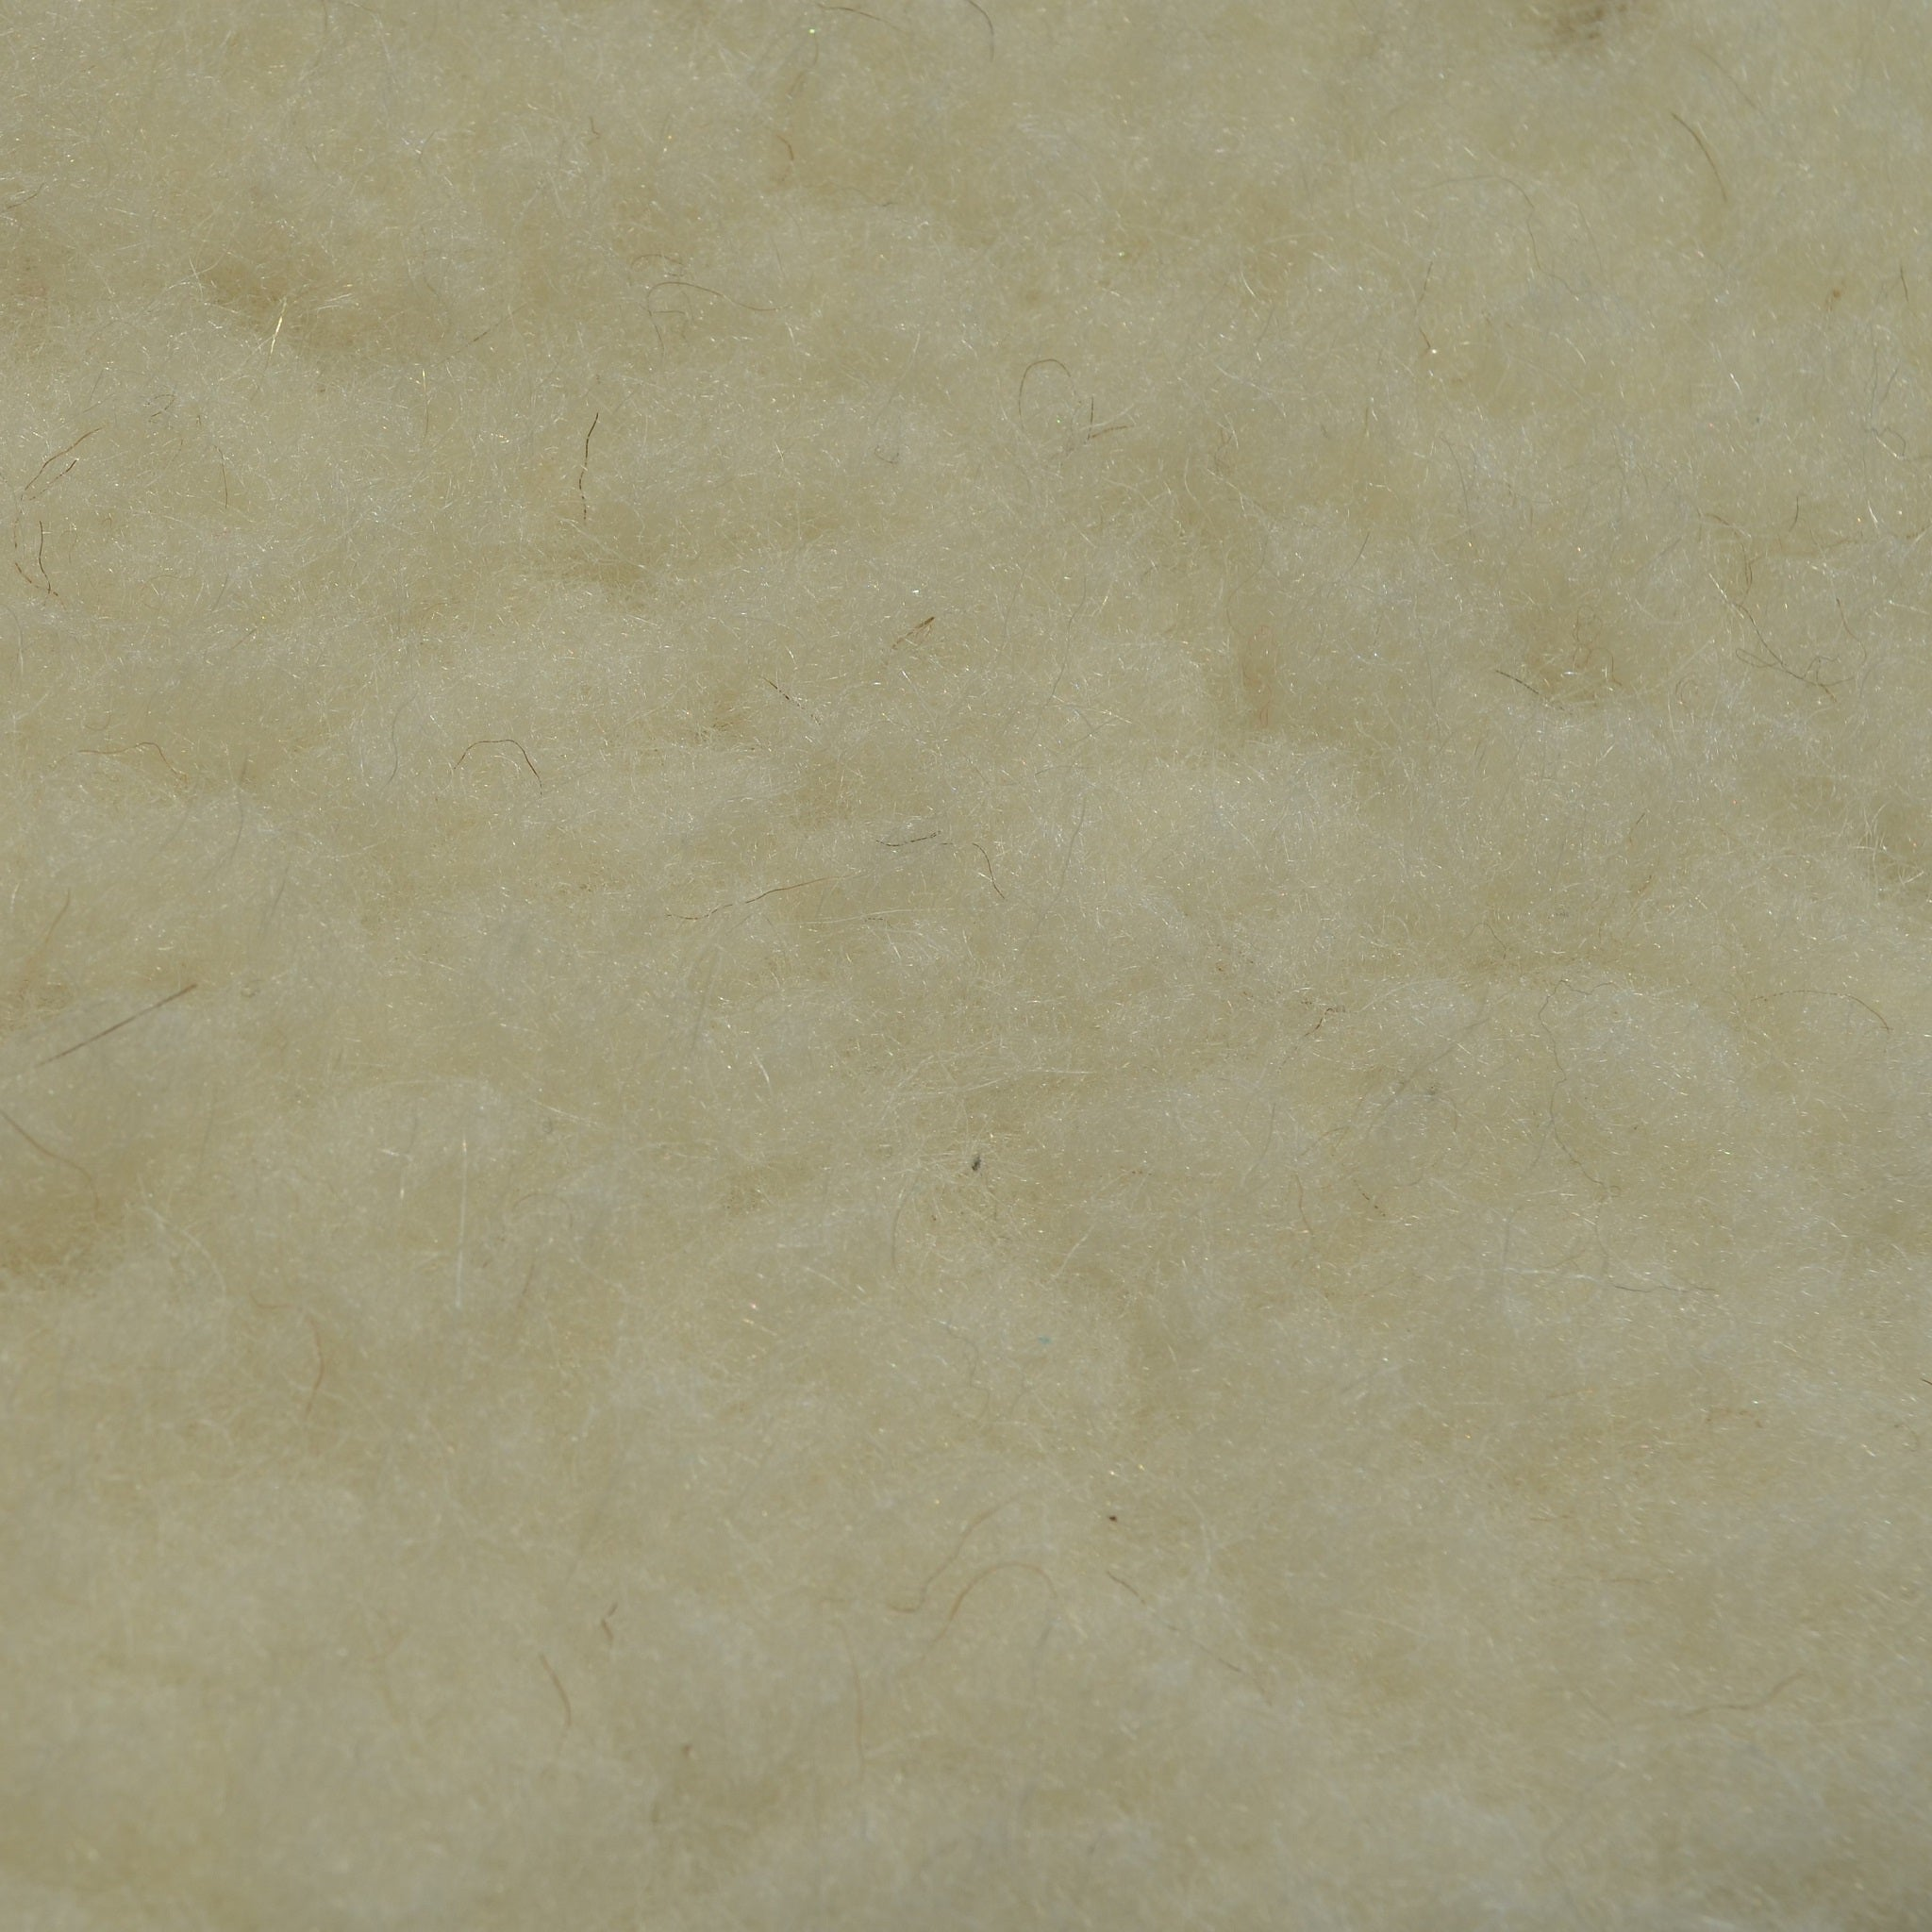 Woolly Cream waterproof fabric for dog beds